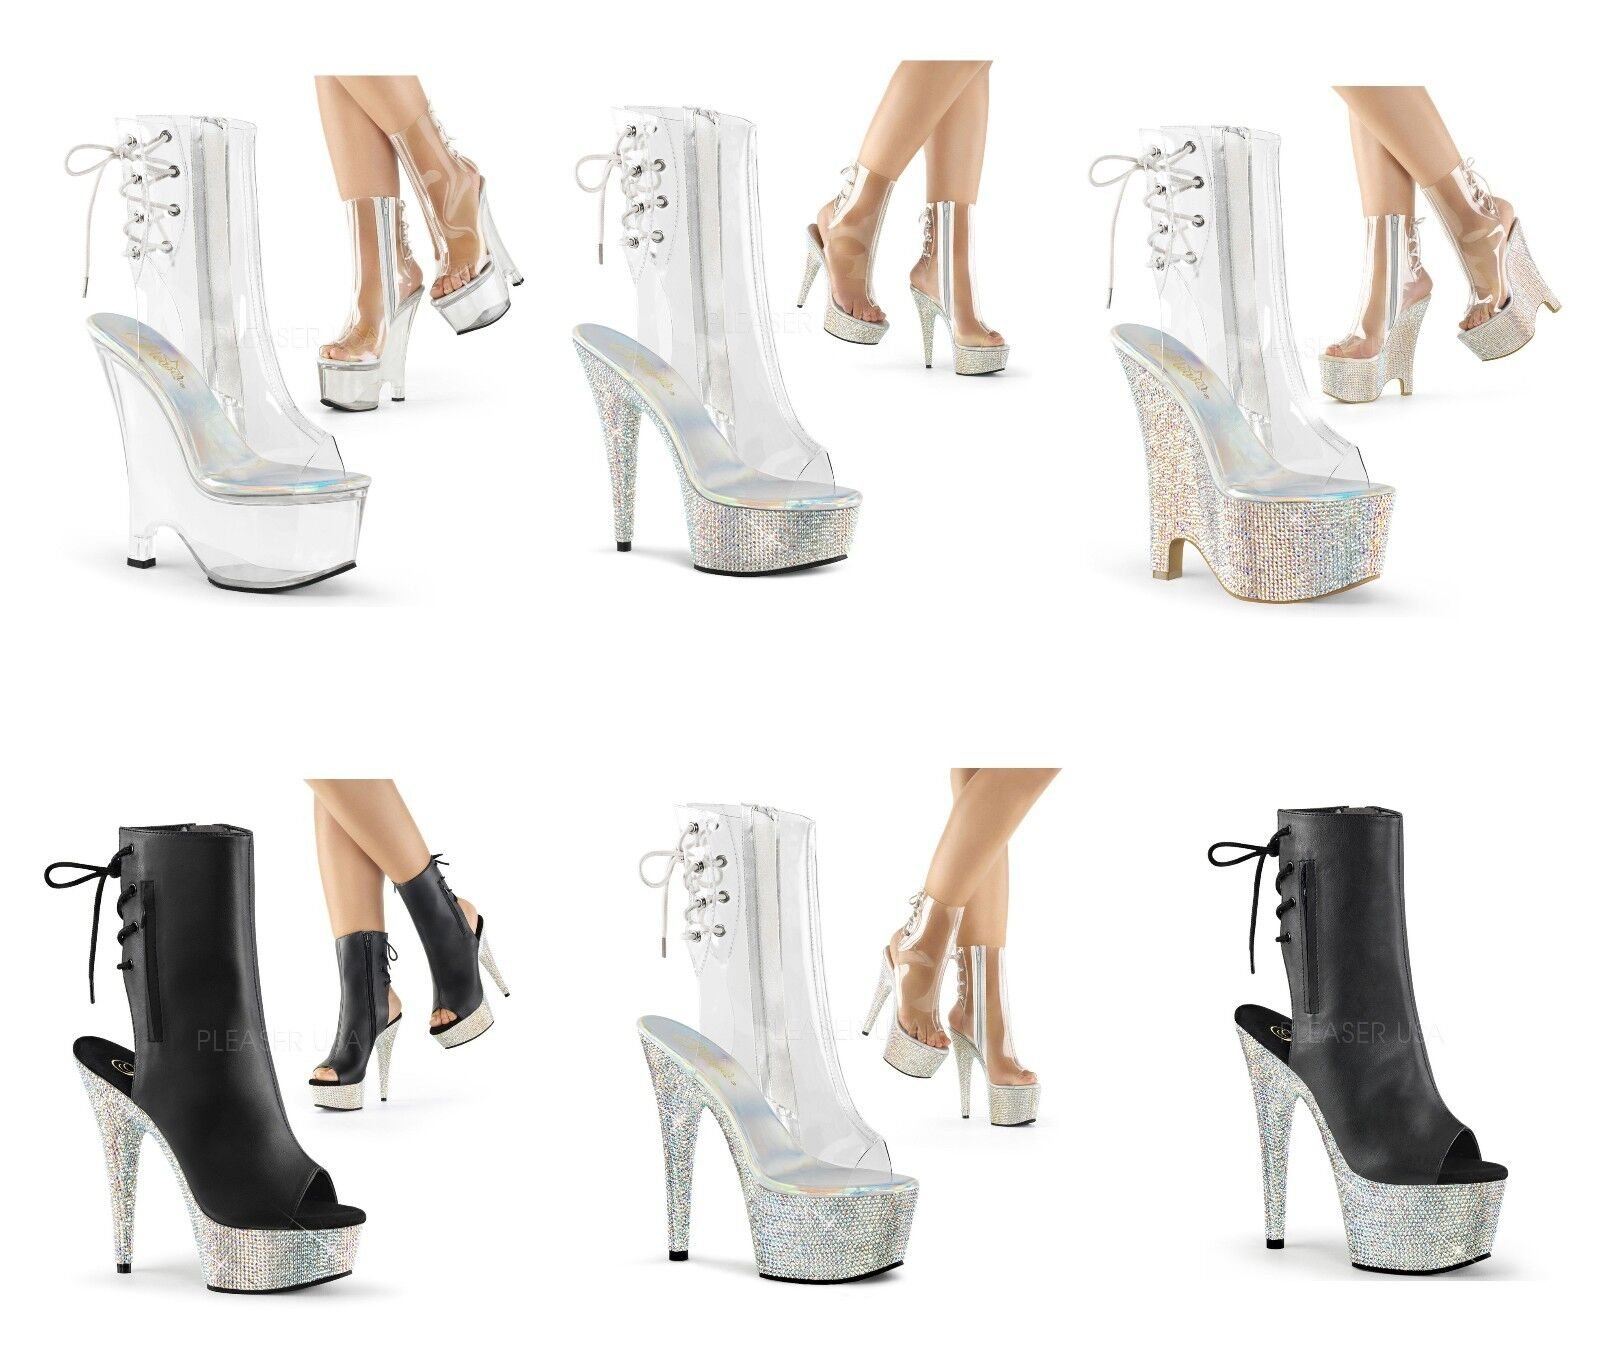 marchio famoso PLEASER BEAU-1018 BEJEWELED-1018 Exotic Dancing Platform Ankle Ankle Ankle avvio  buon prezzo